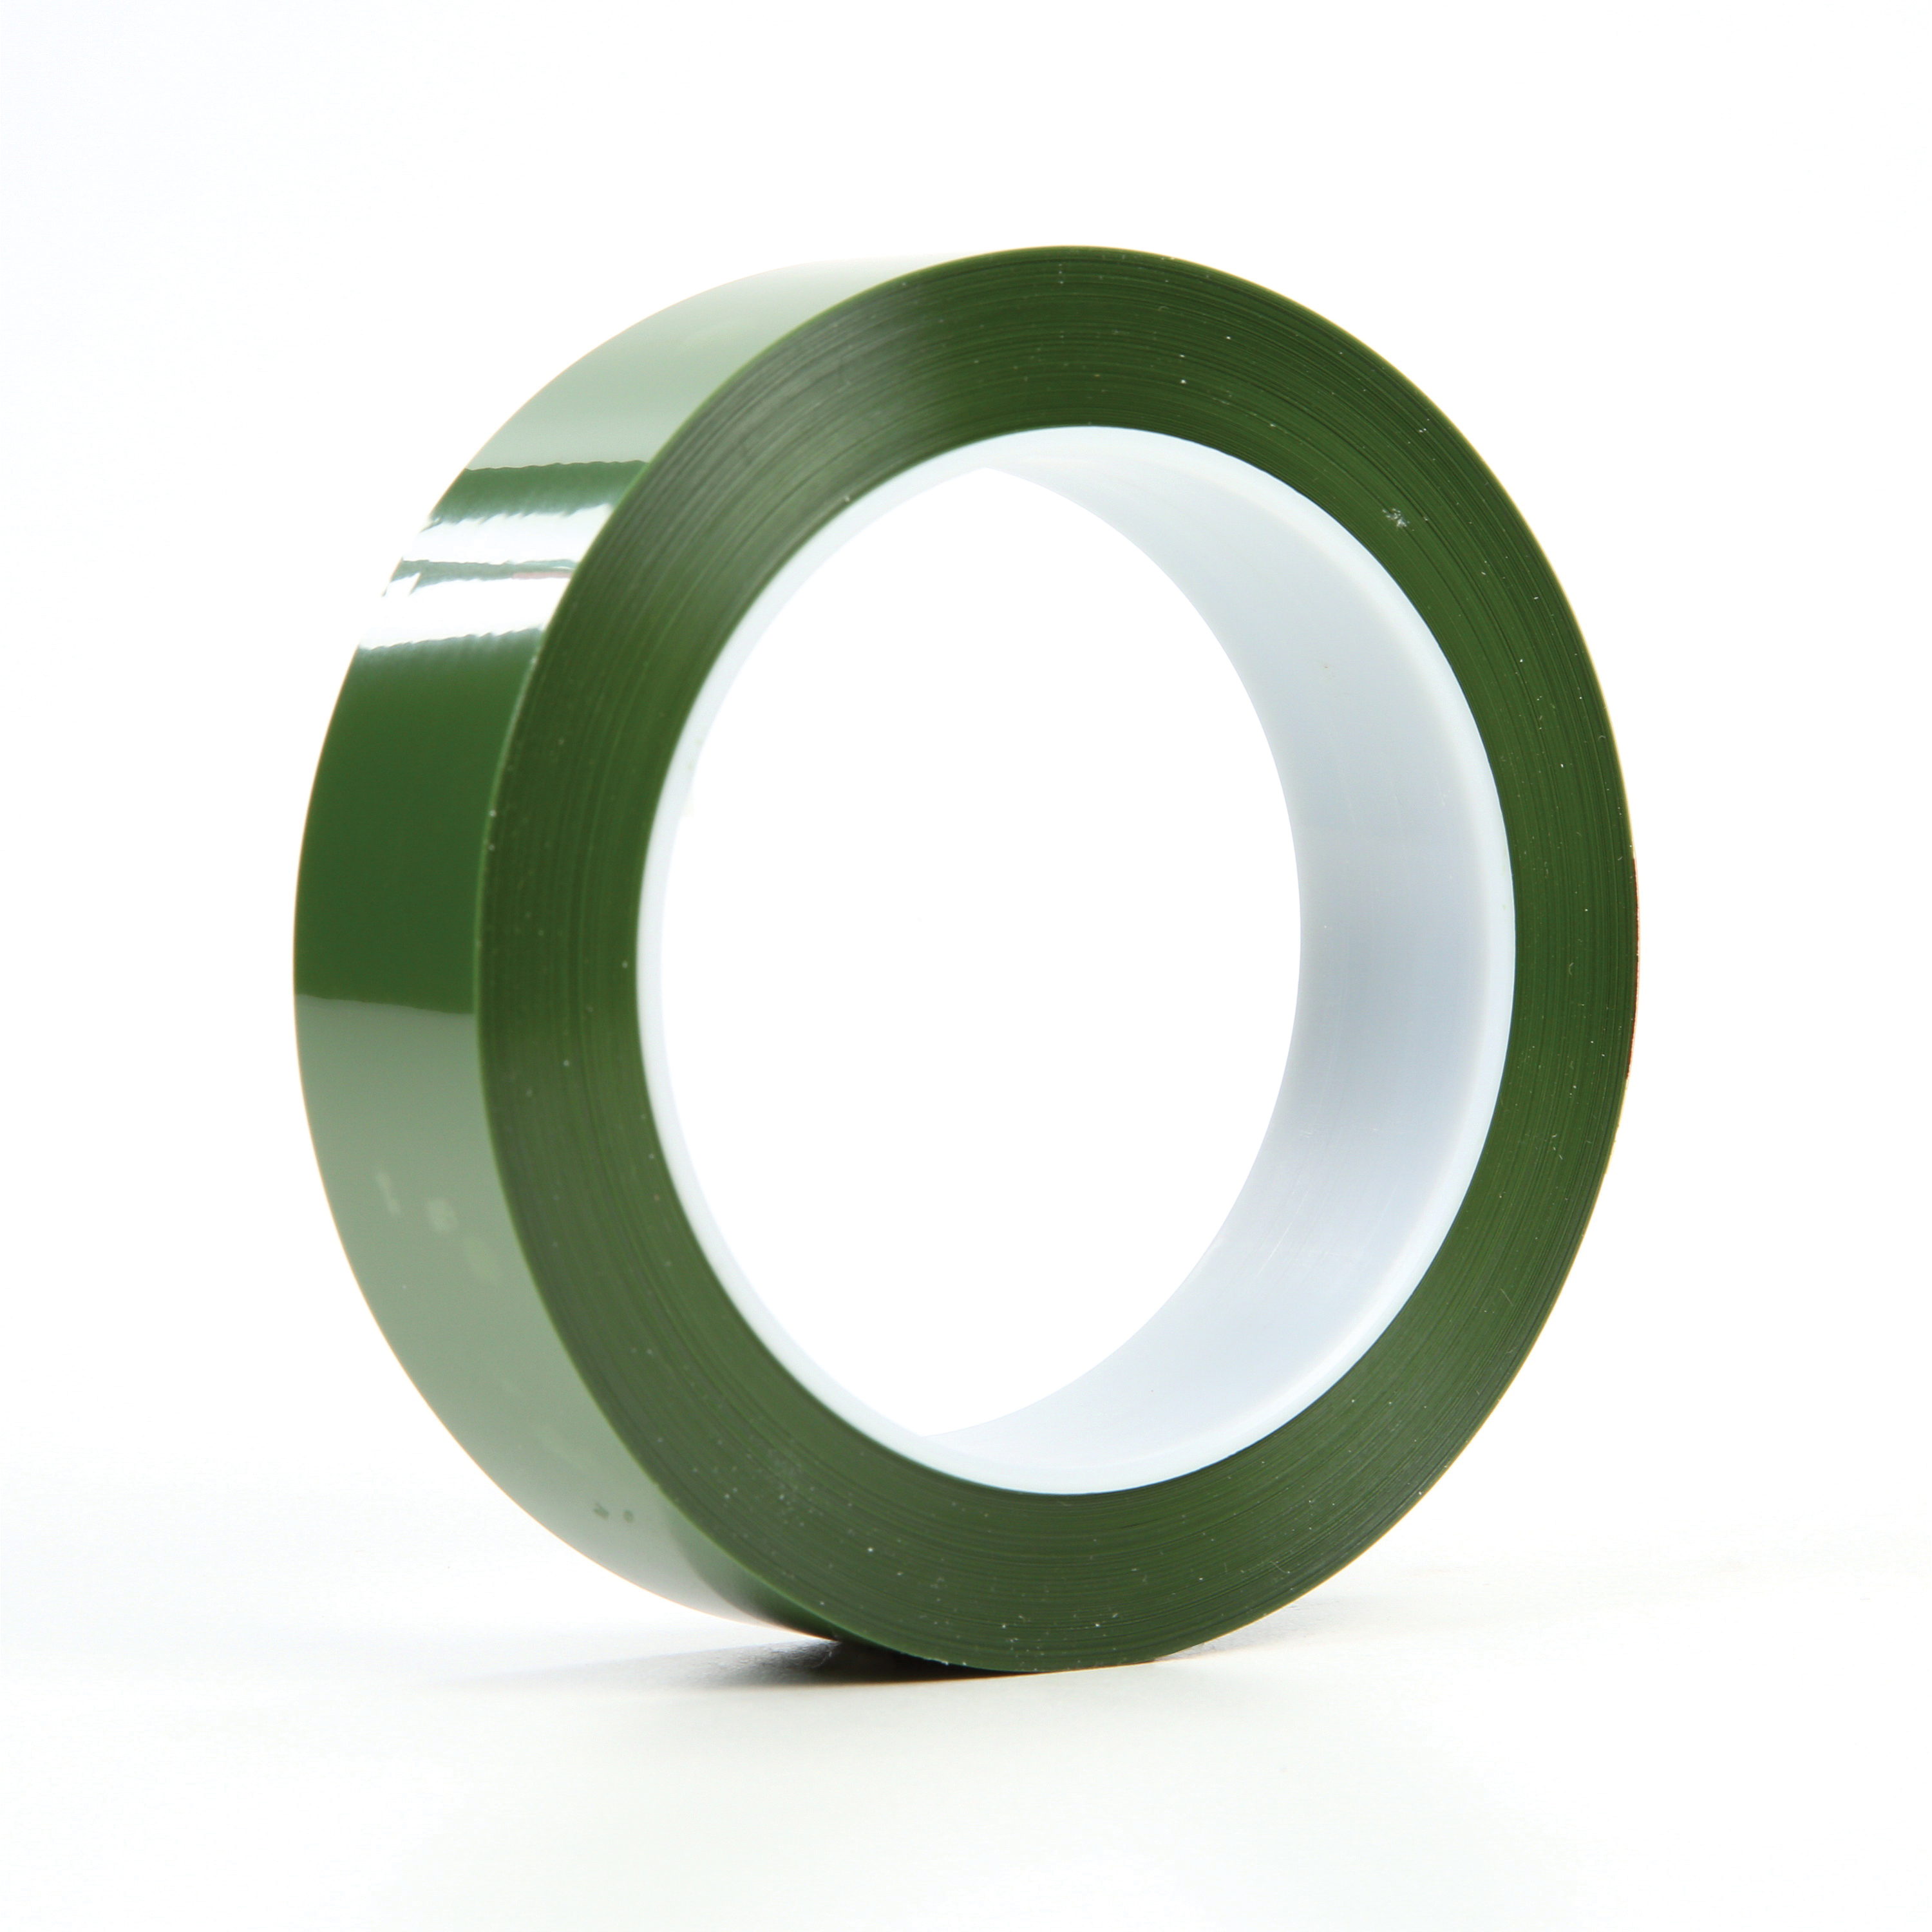 3M™ 021200-61458 Tear-Resistant Masking Tape, 72 yd L x 1 in W, 2.4 mil THK, Silicone Adhesive, 1.4 mil Polyester Backing